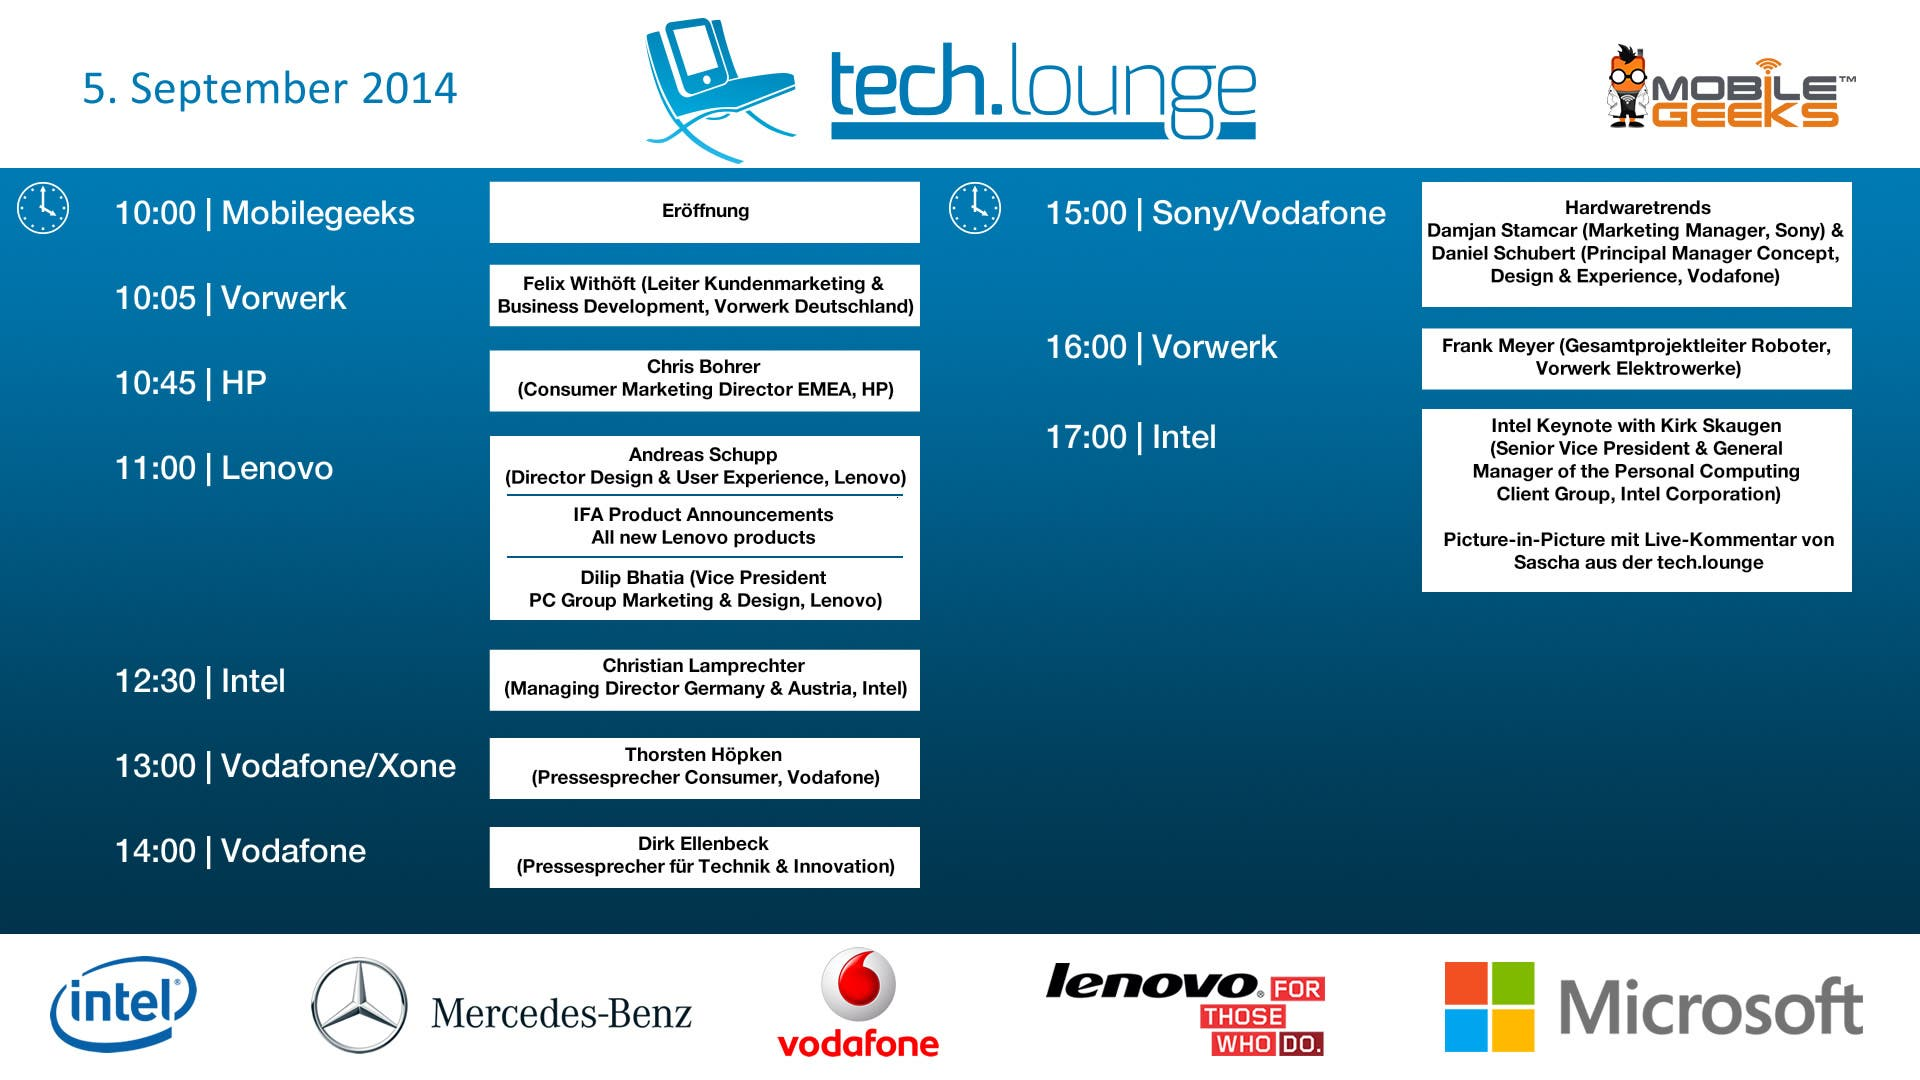 CeBIT 2014 Timetable - Day 1 v6